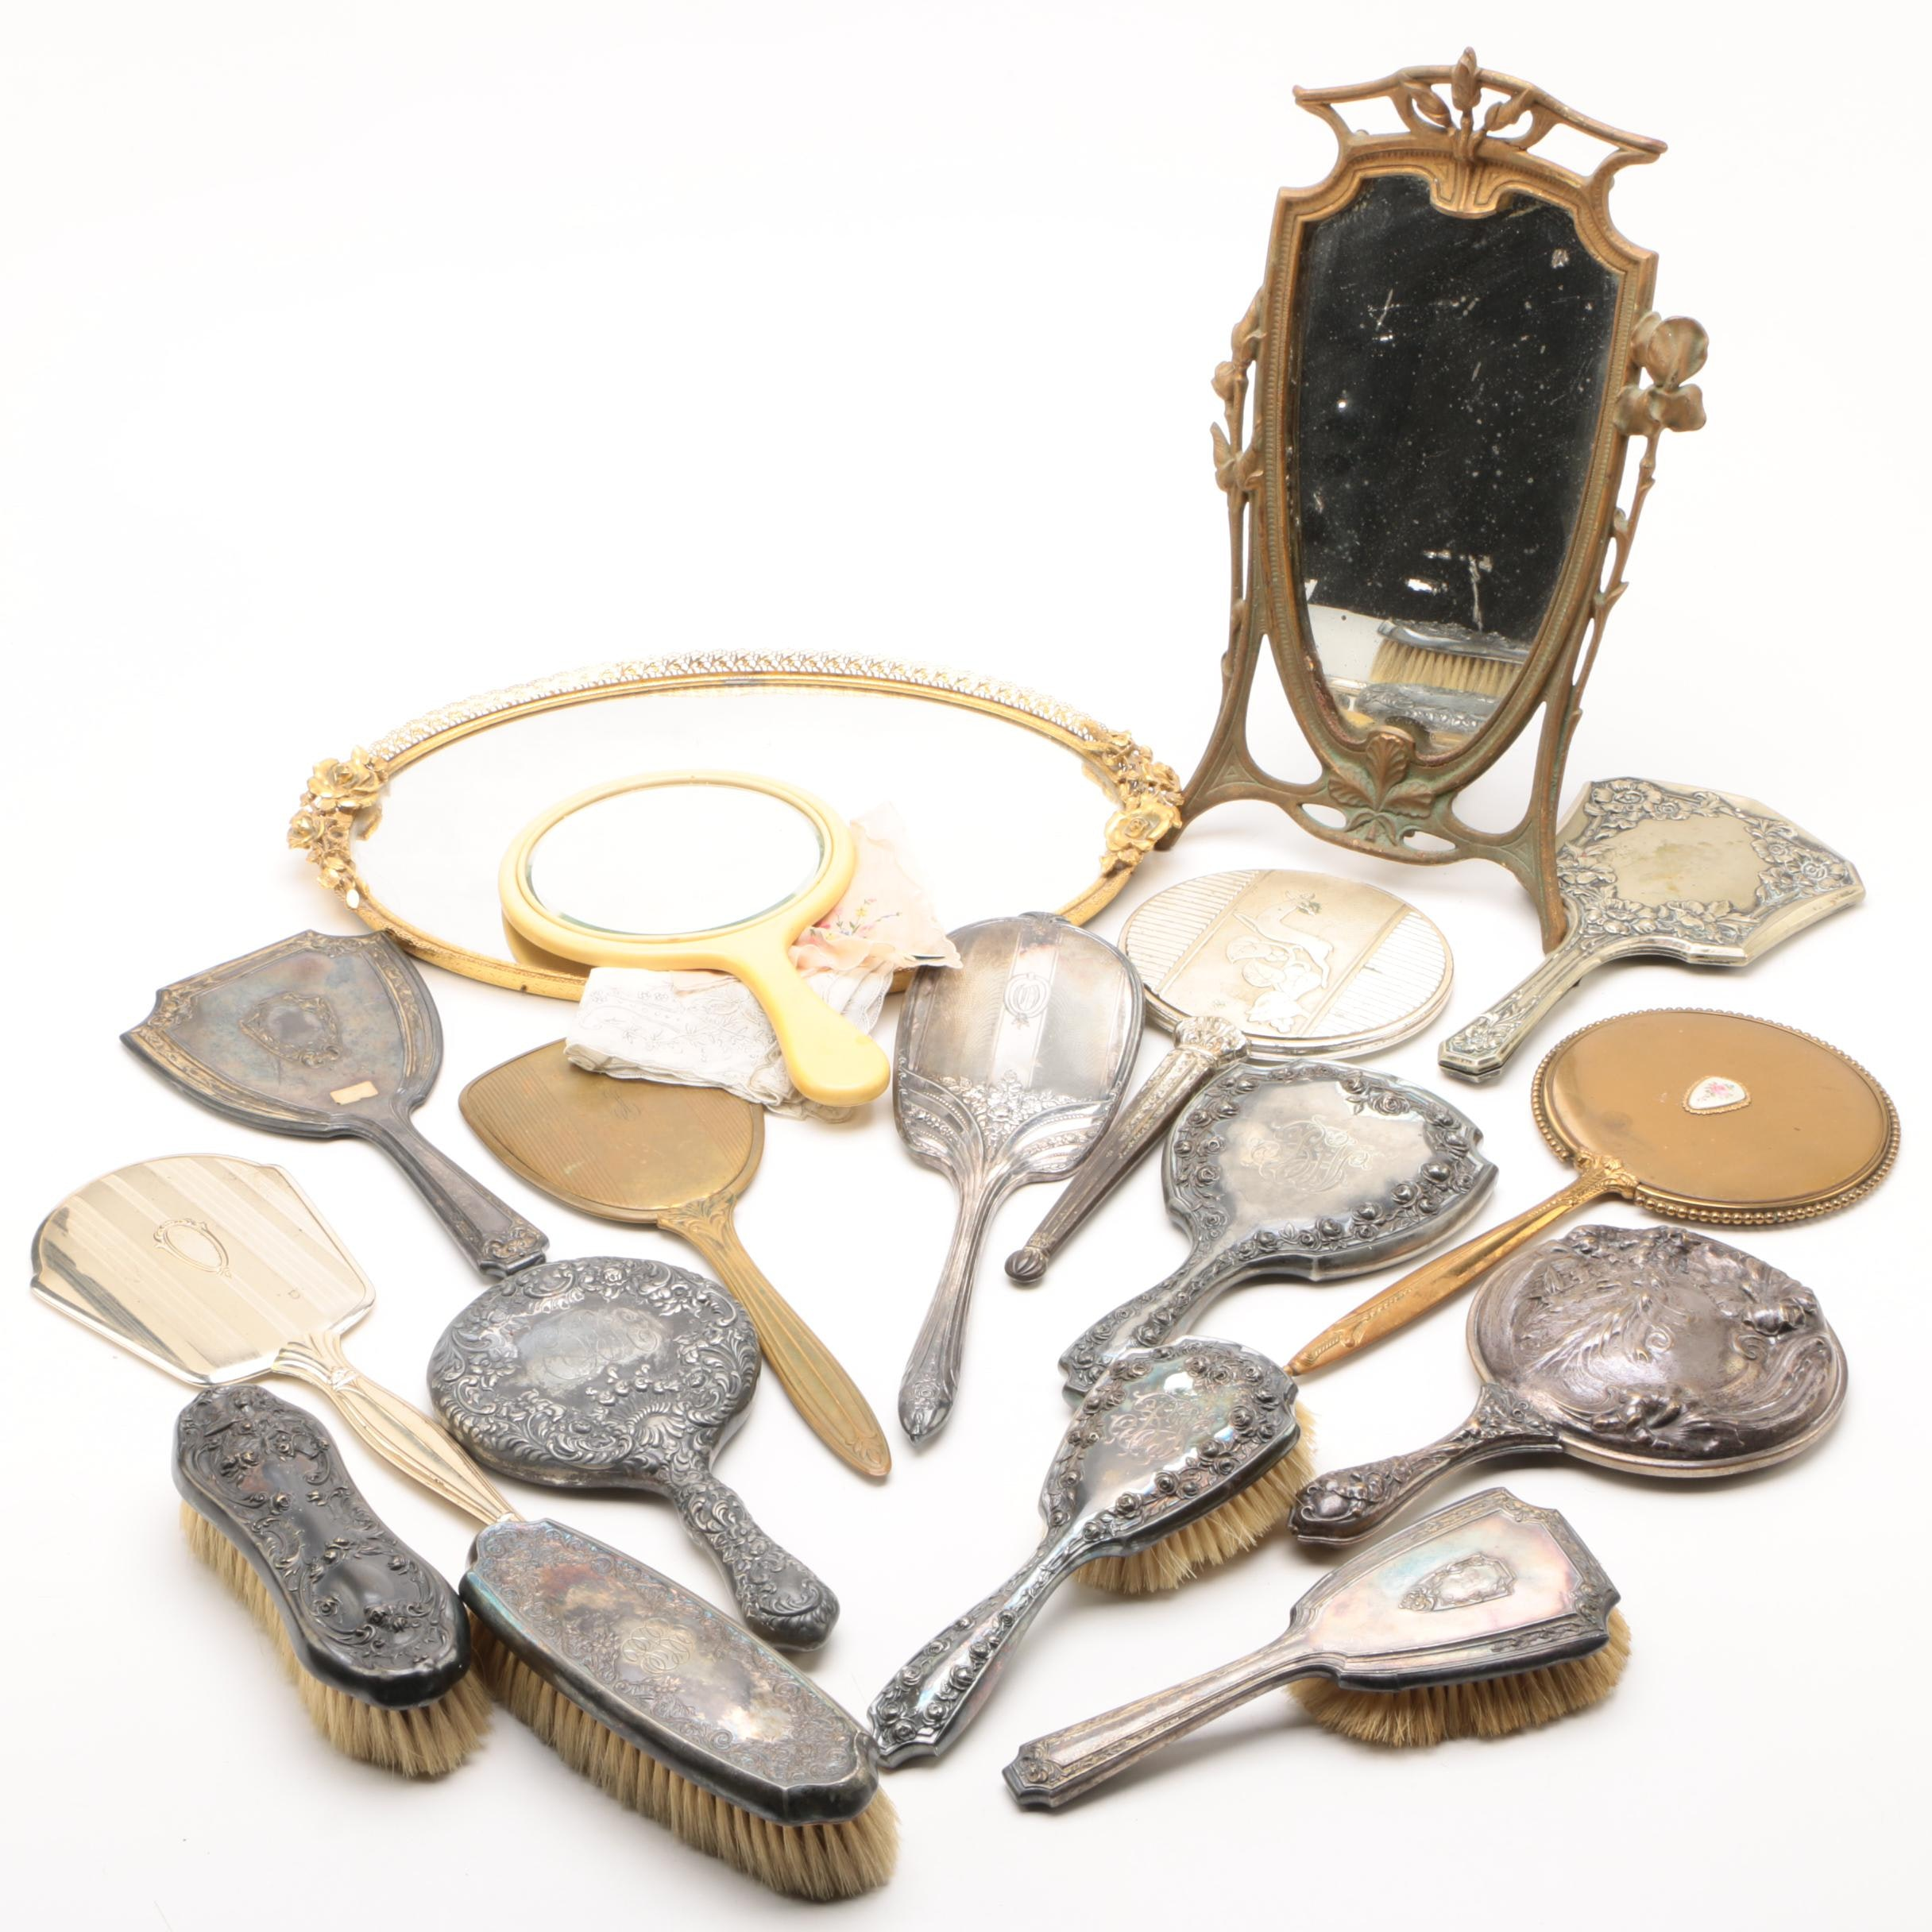 Silver Plate Mirrors and Brushes with Other Vanity Items, Early 20th Century